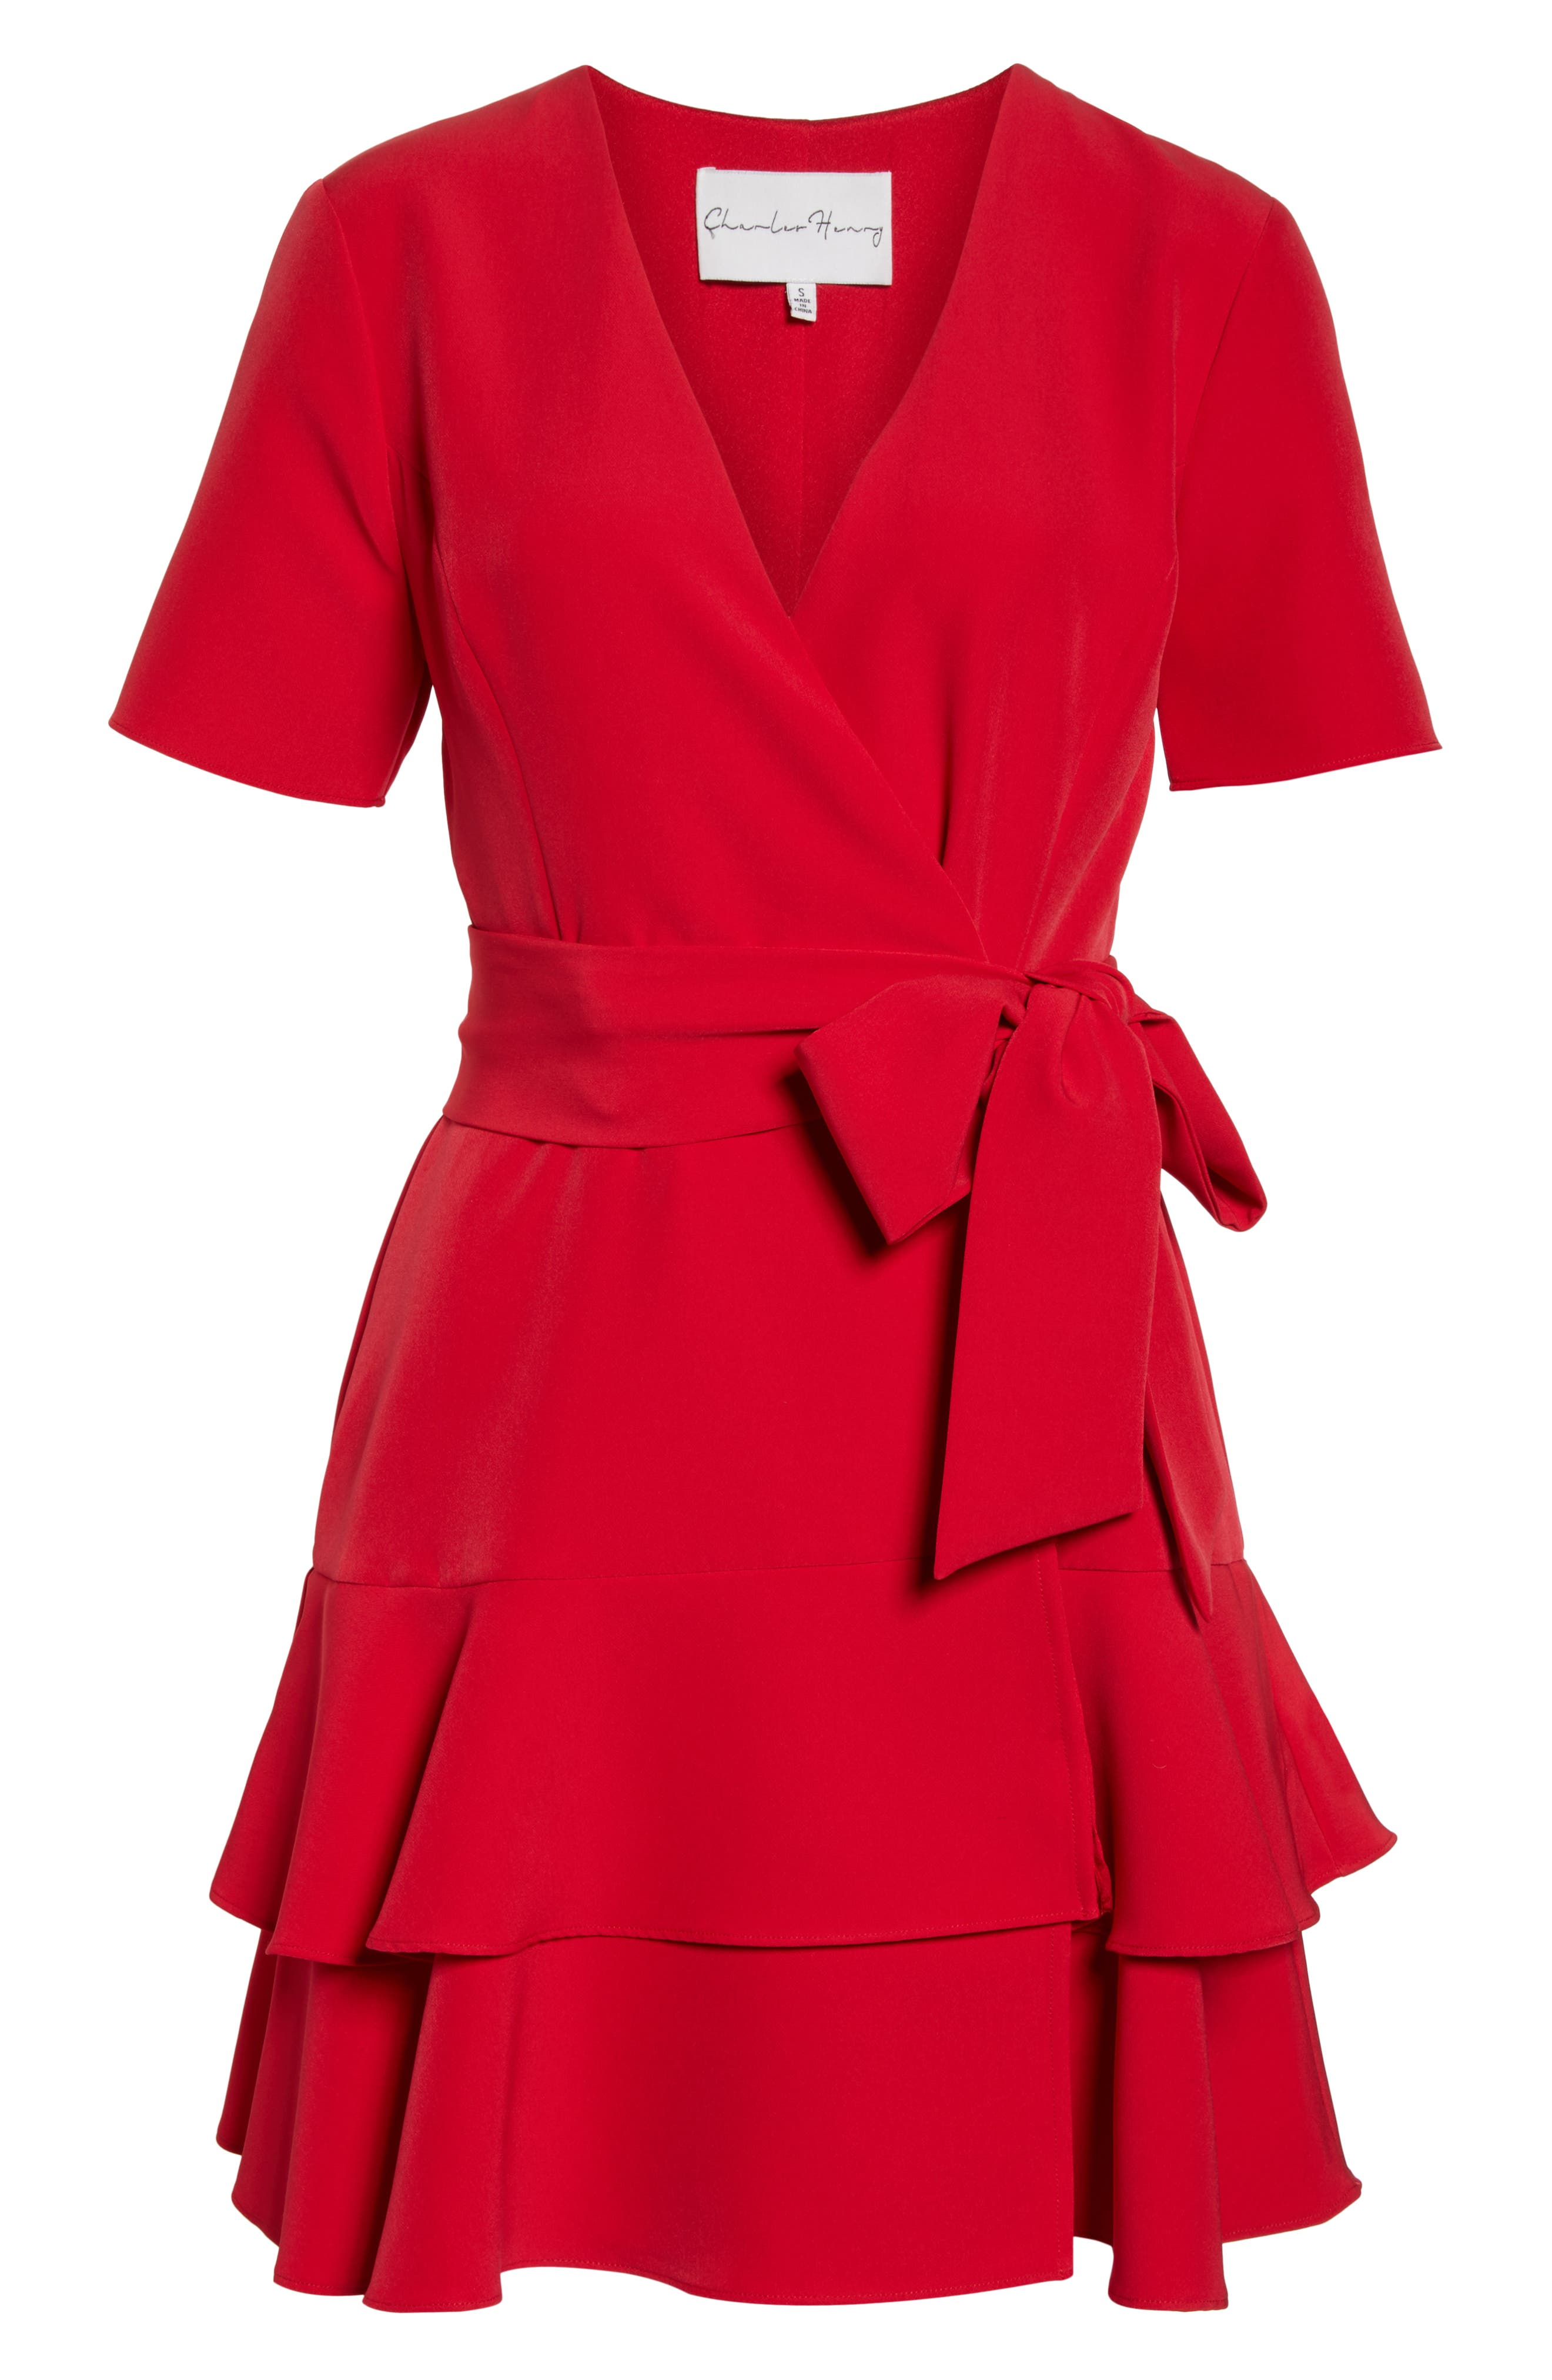 CHARLES HENRY, Ruffle Tiered Wrap Dress, Alternate thumbnail 7, color, SCARLET